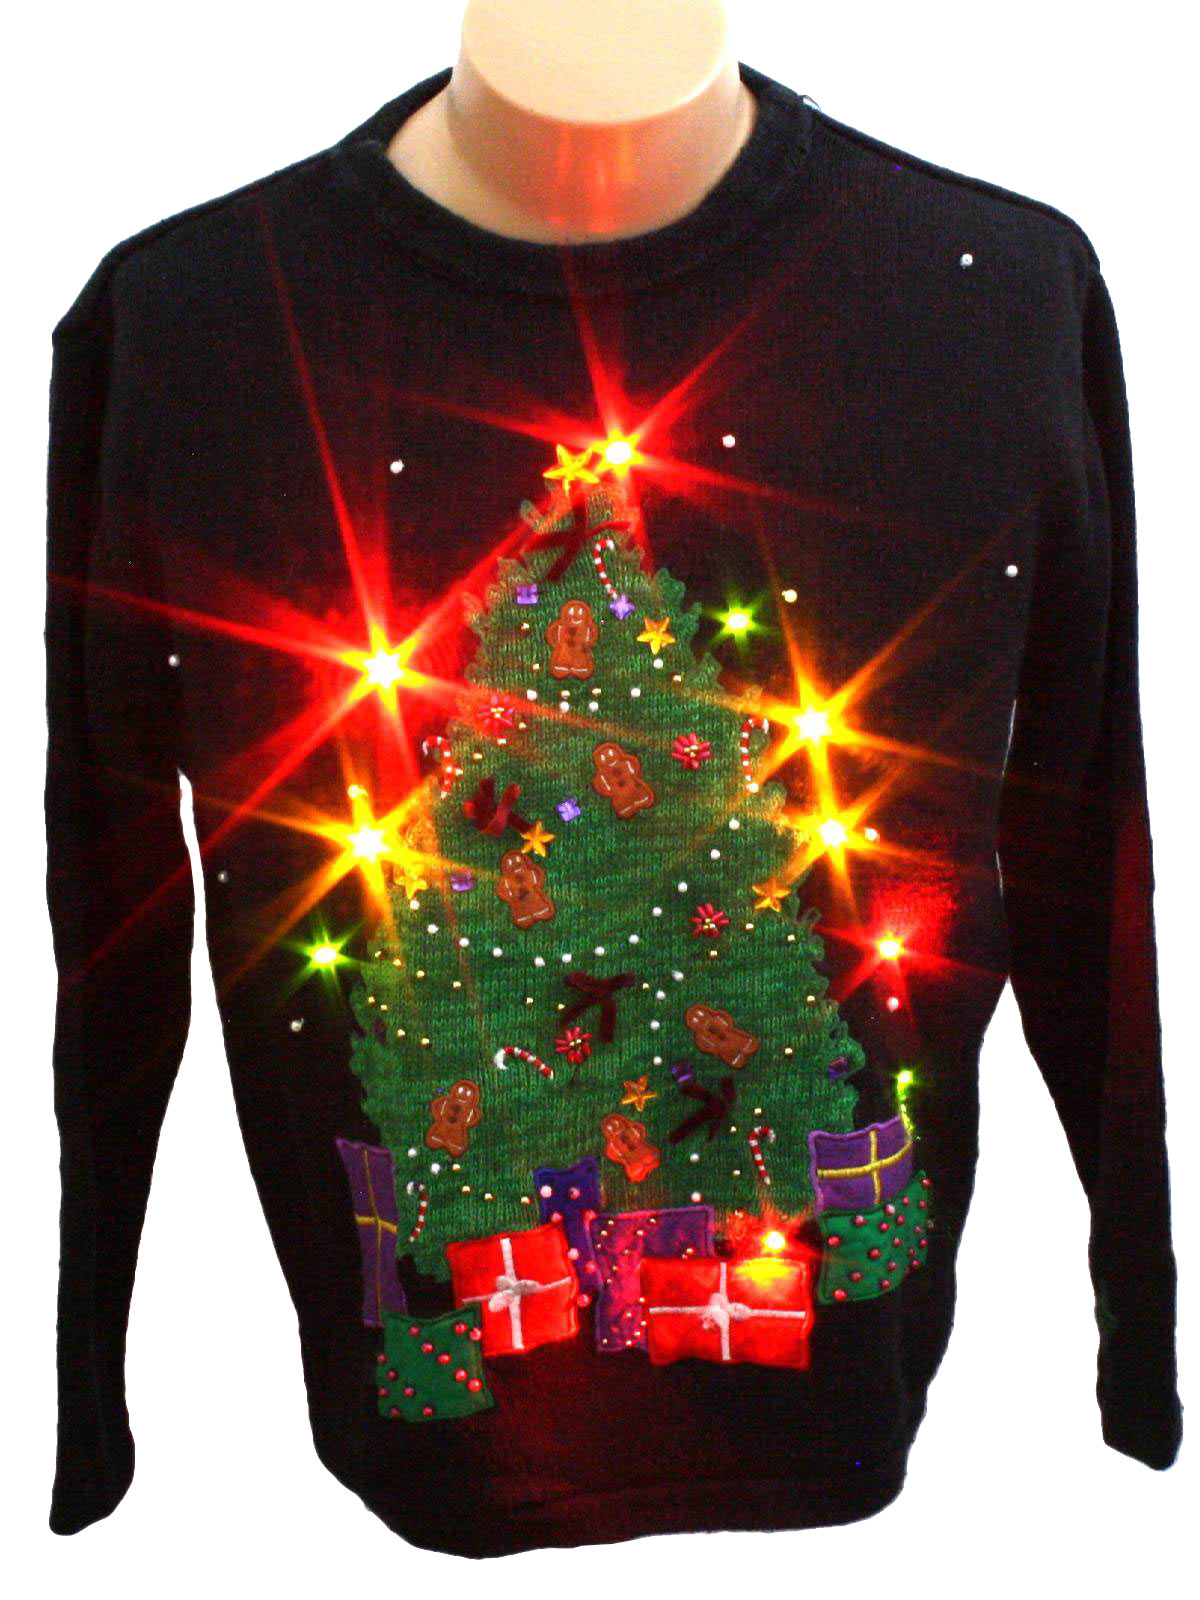 90s Light Up Ugly Christmas Sweater Vest - The Ugly Sweater Shop